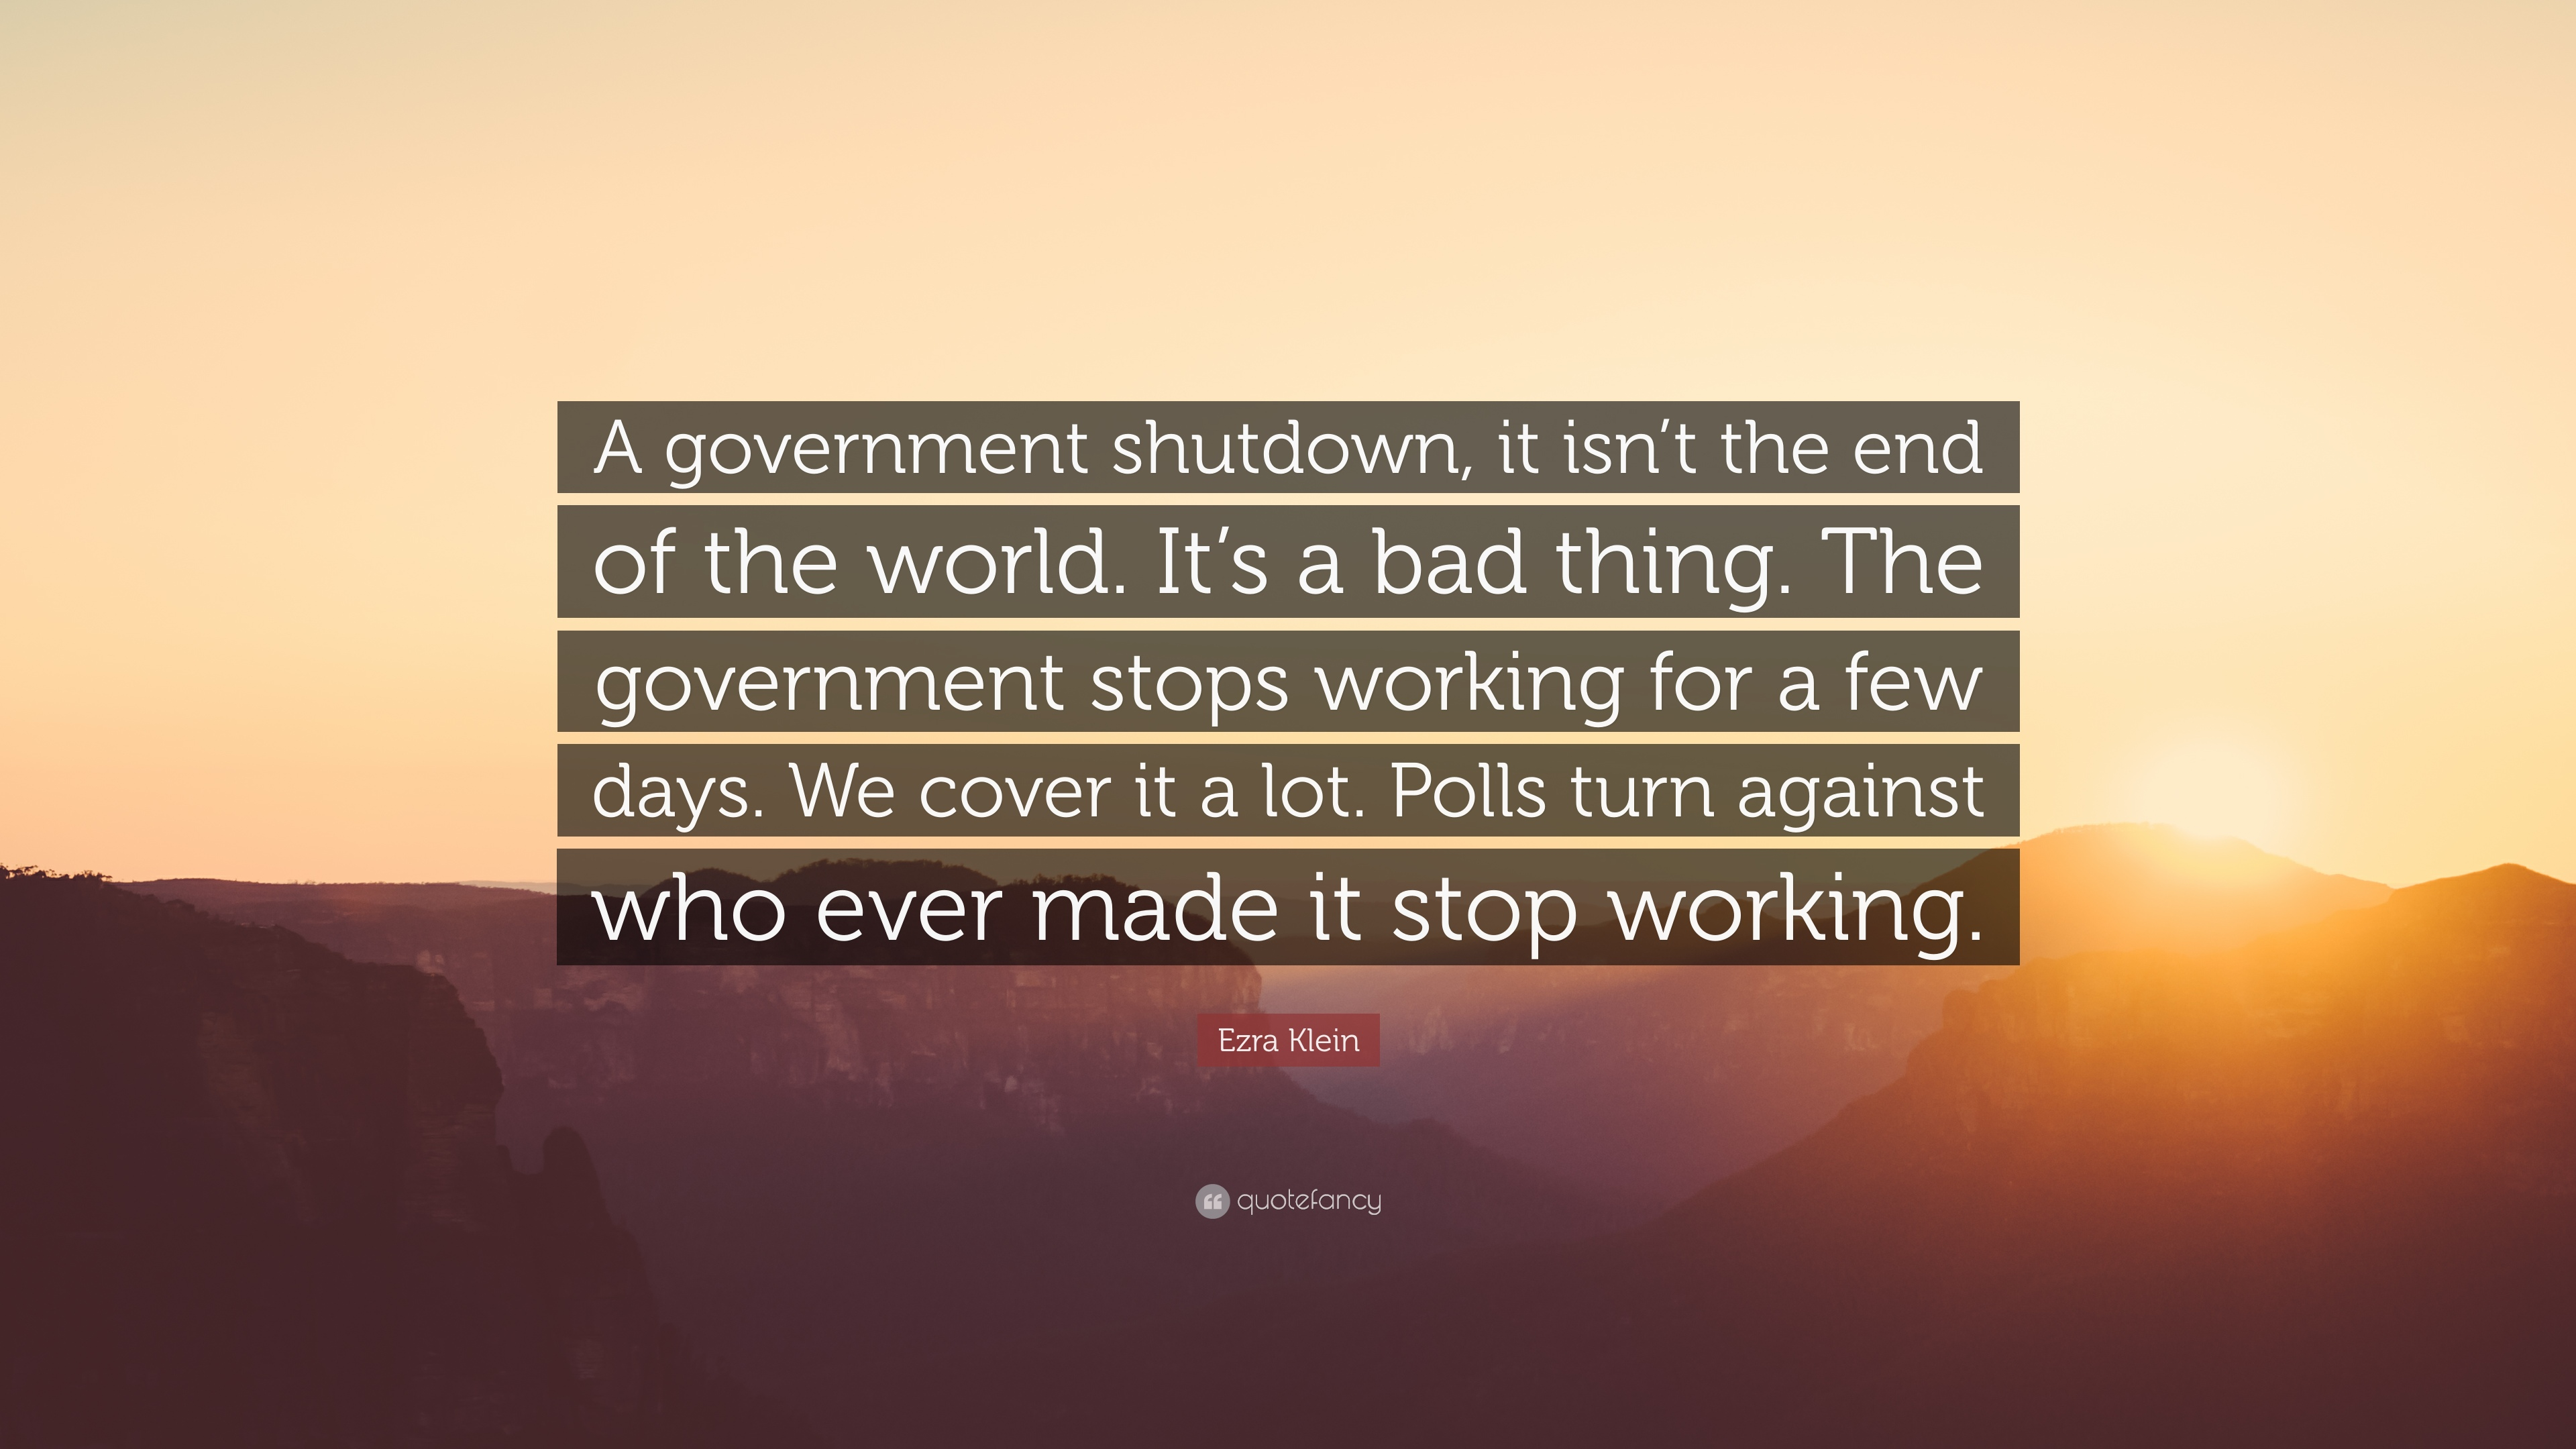 Government shutdown image quotes